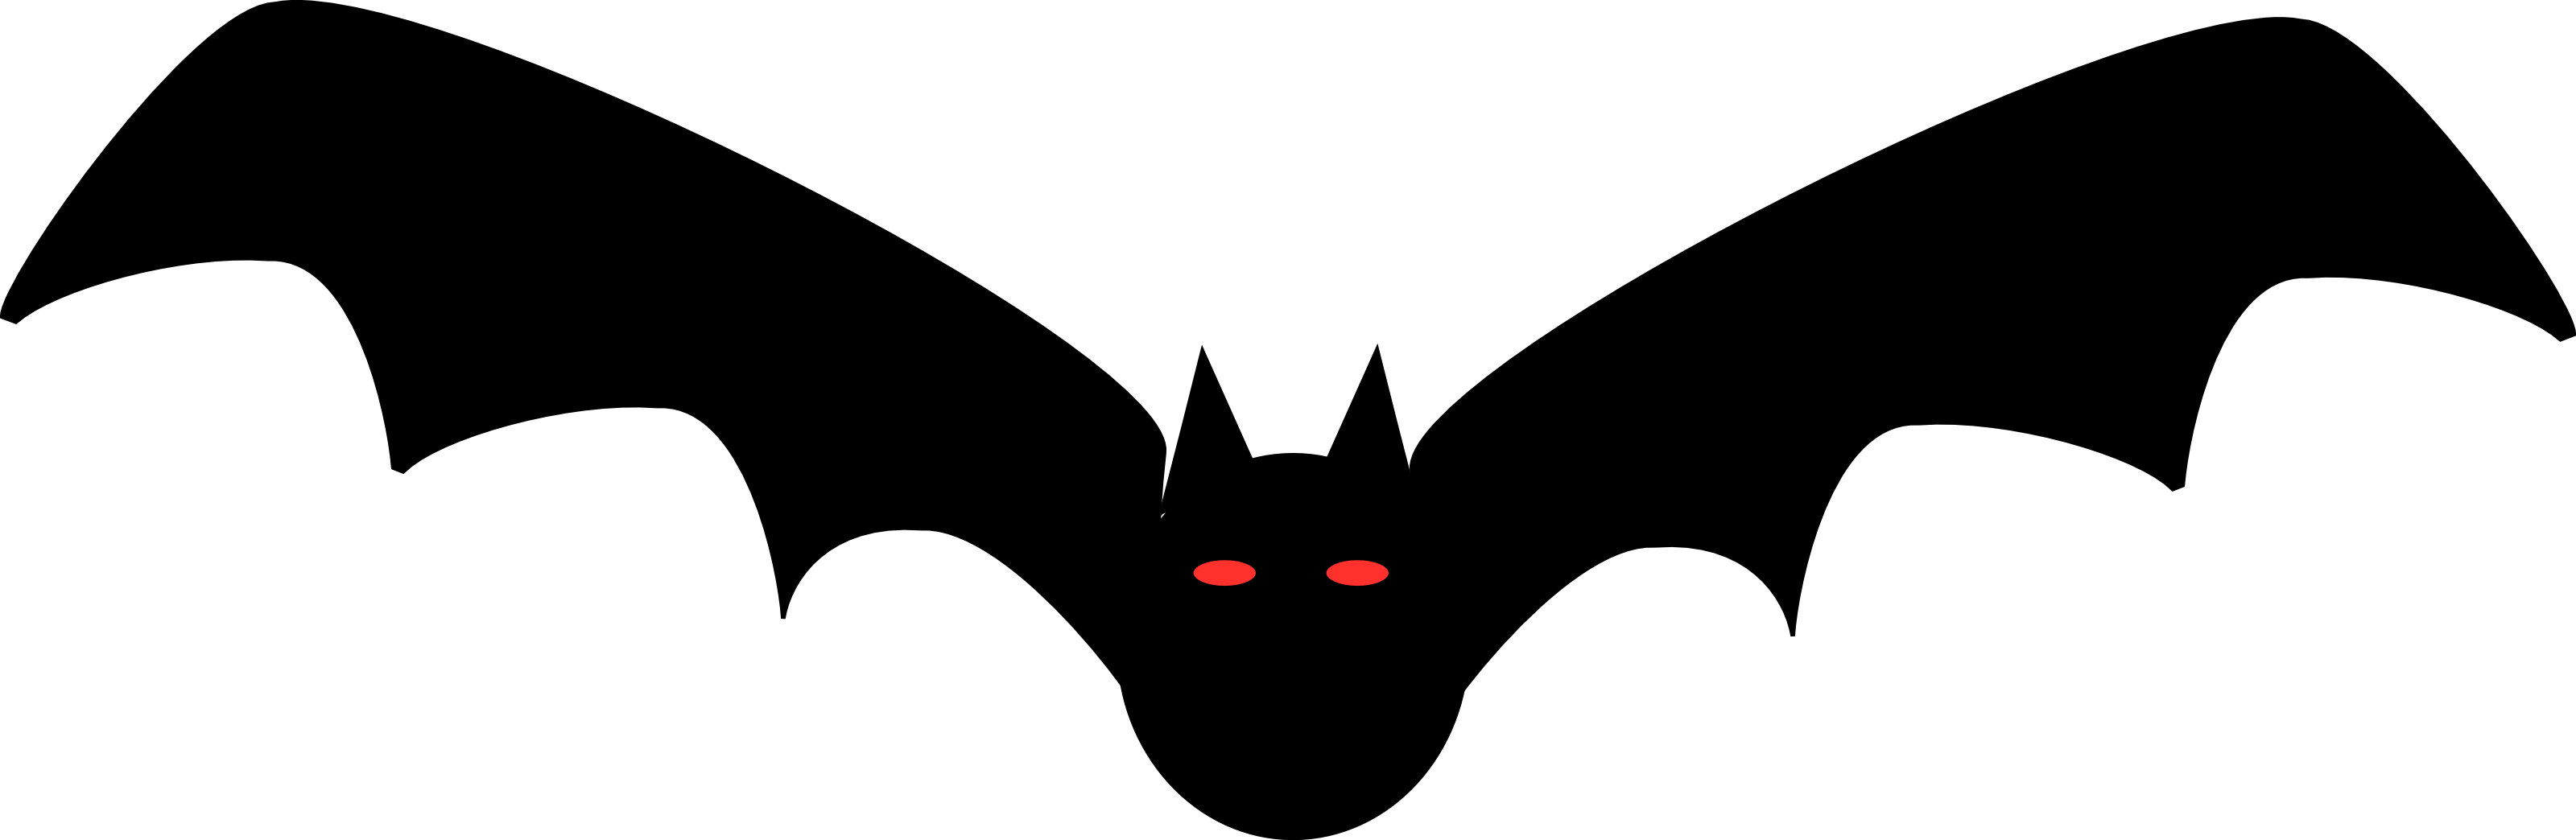 Halloween Bat Clipart | Clipart Panda - Free Clipart Images